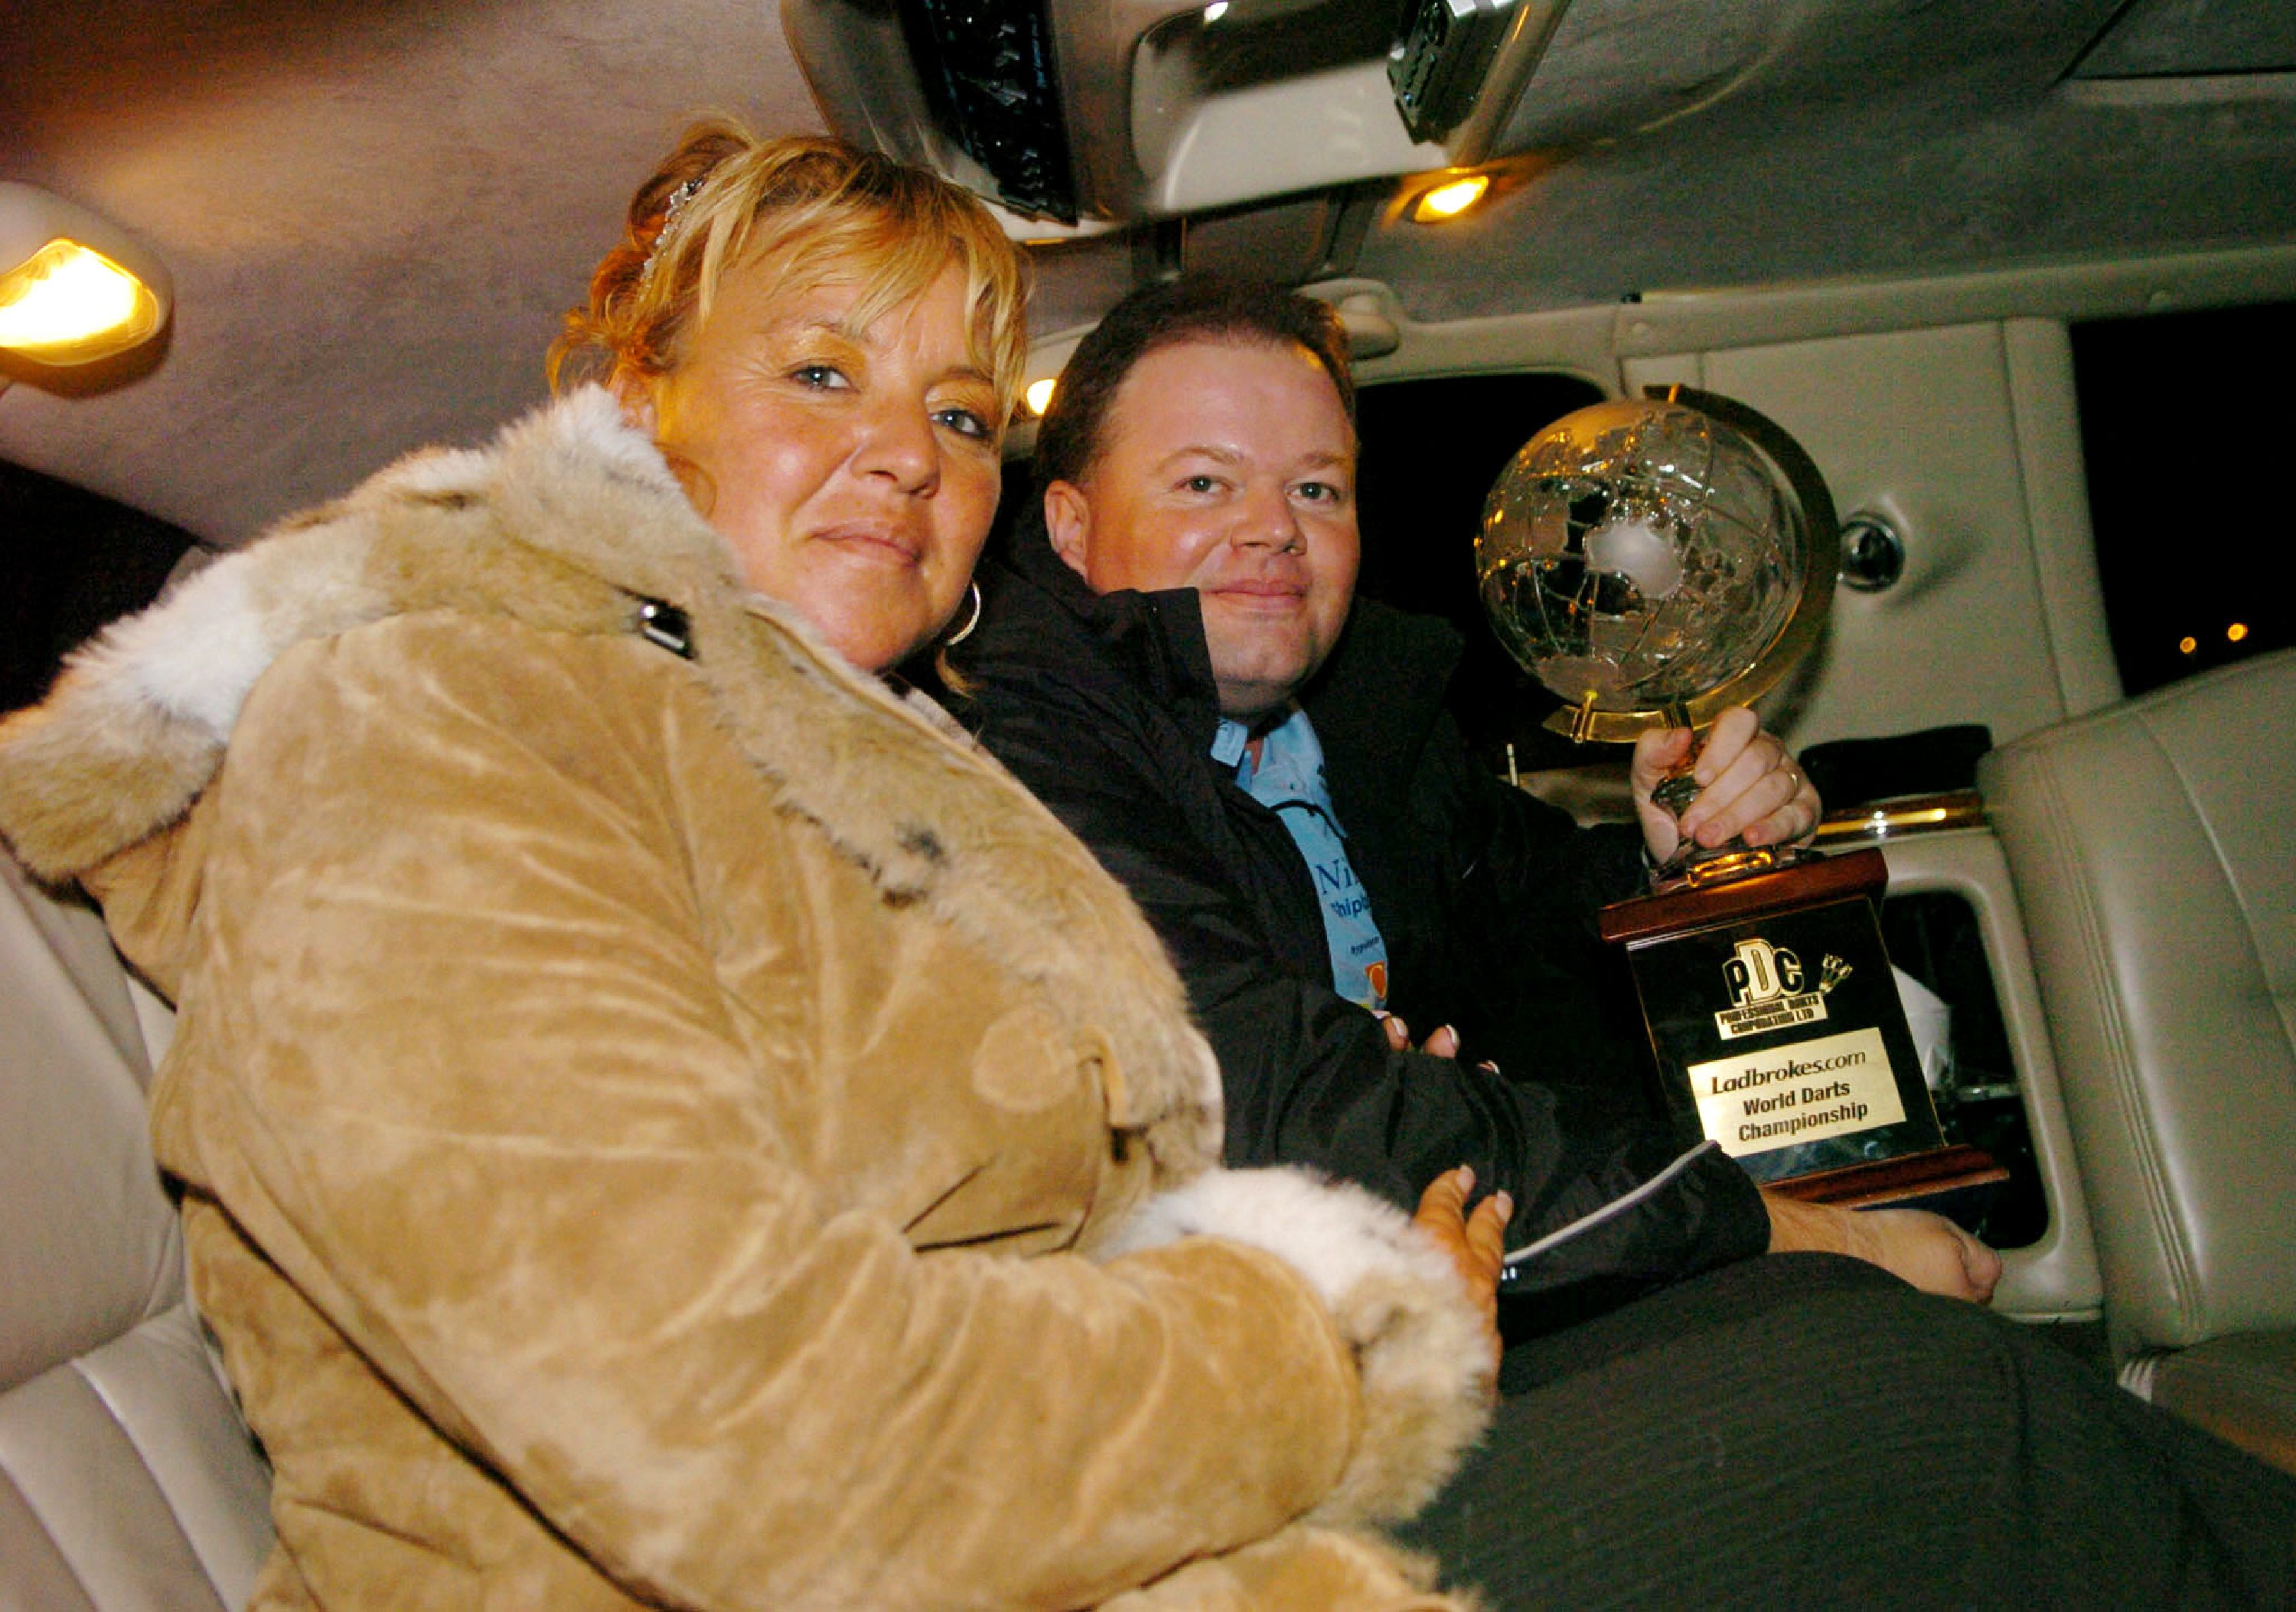 Raymond van Barneveld and his wife Silvia after he won the championship in 2007